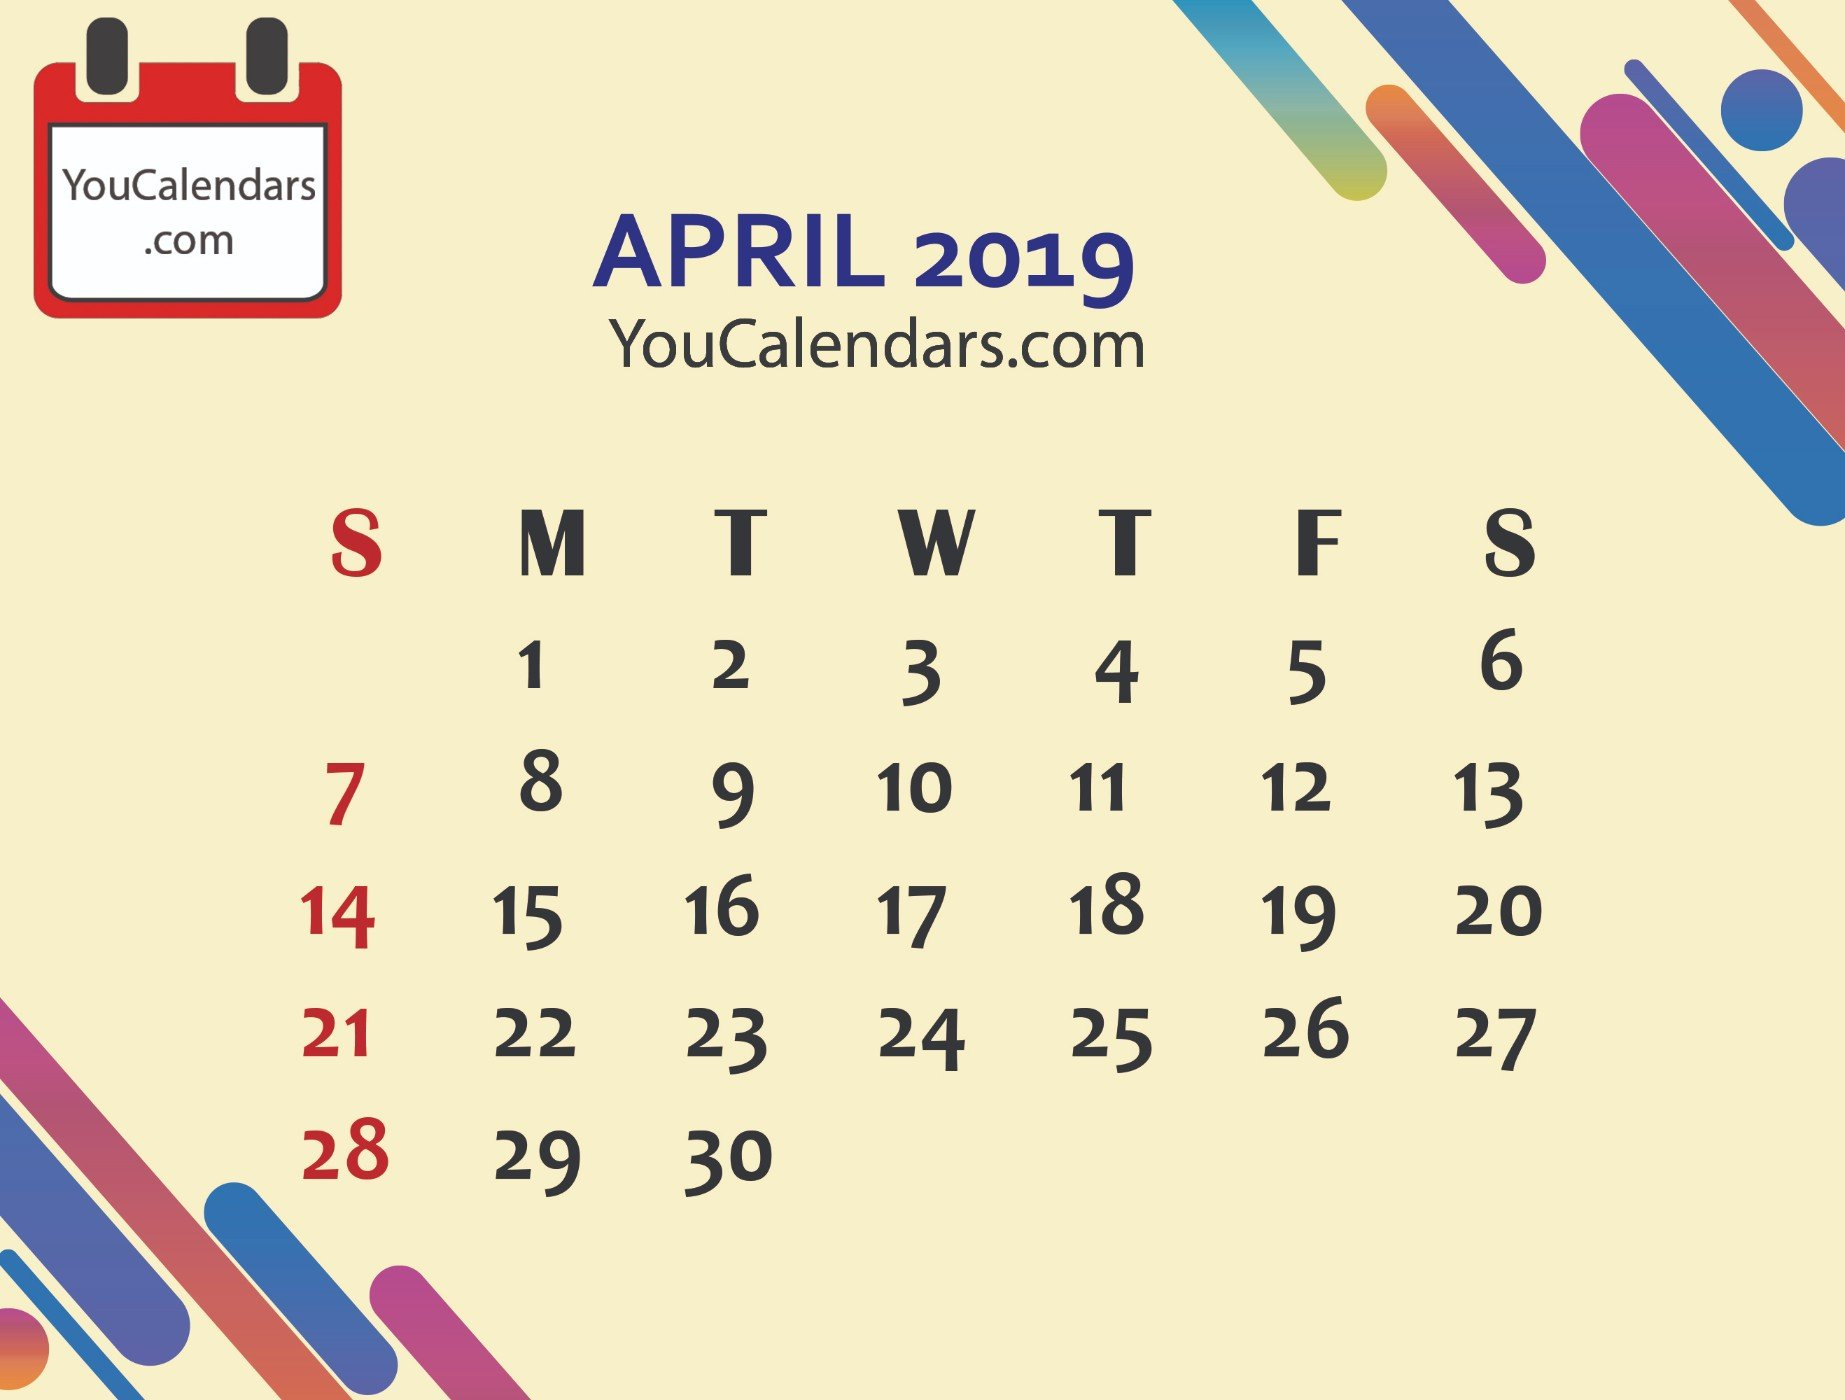 ✅Free April 2019 Calendar Printable Template - You Calendars April 6 2019 Calendar